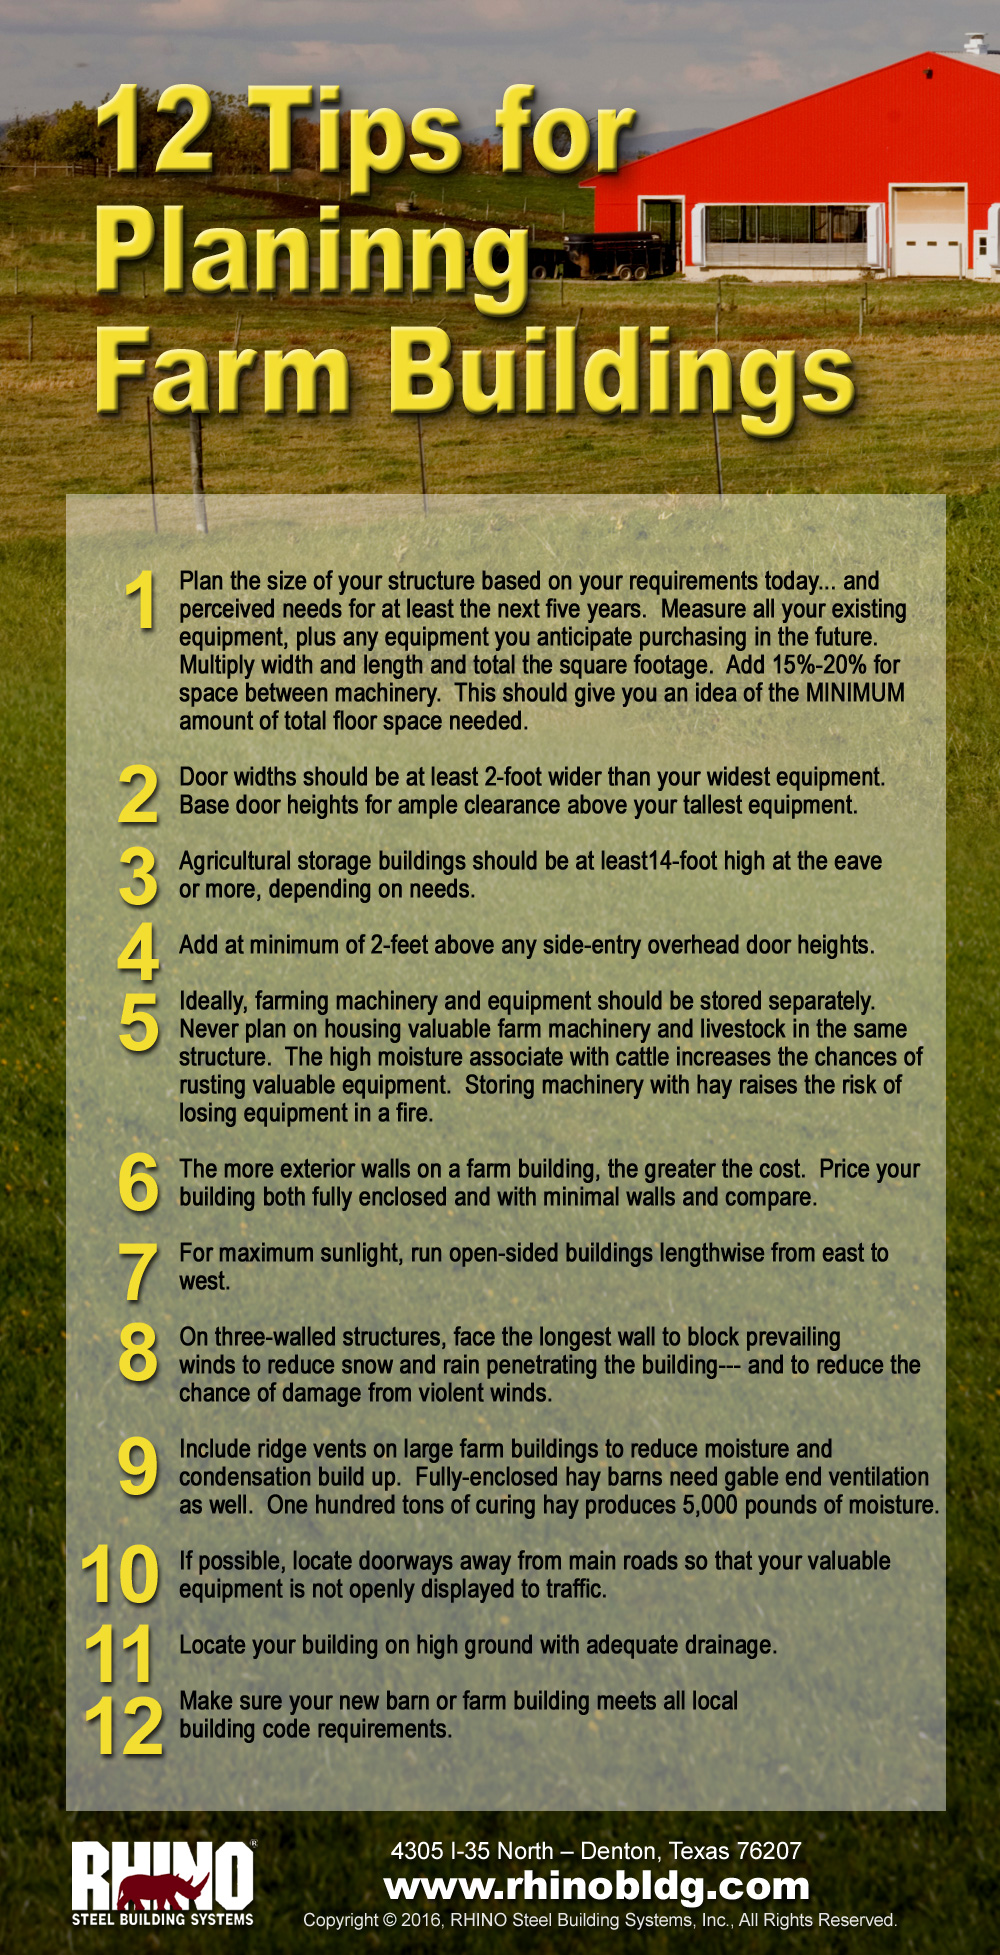 RHINO infographic with 12 Tips for Planning metal barns and steel farm buildings.